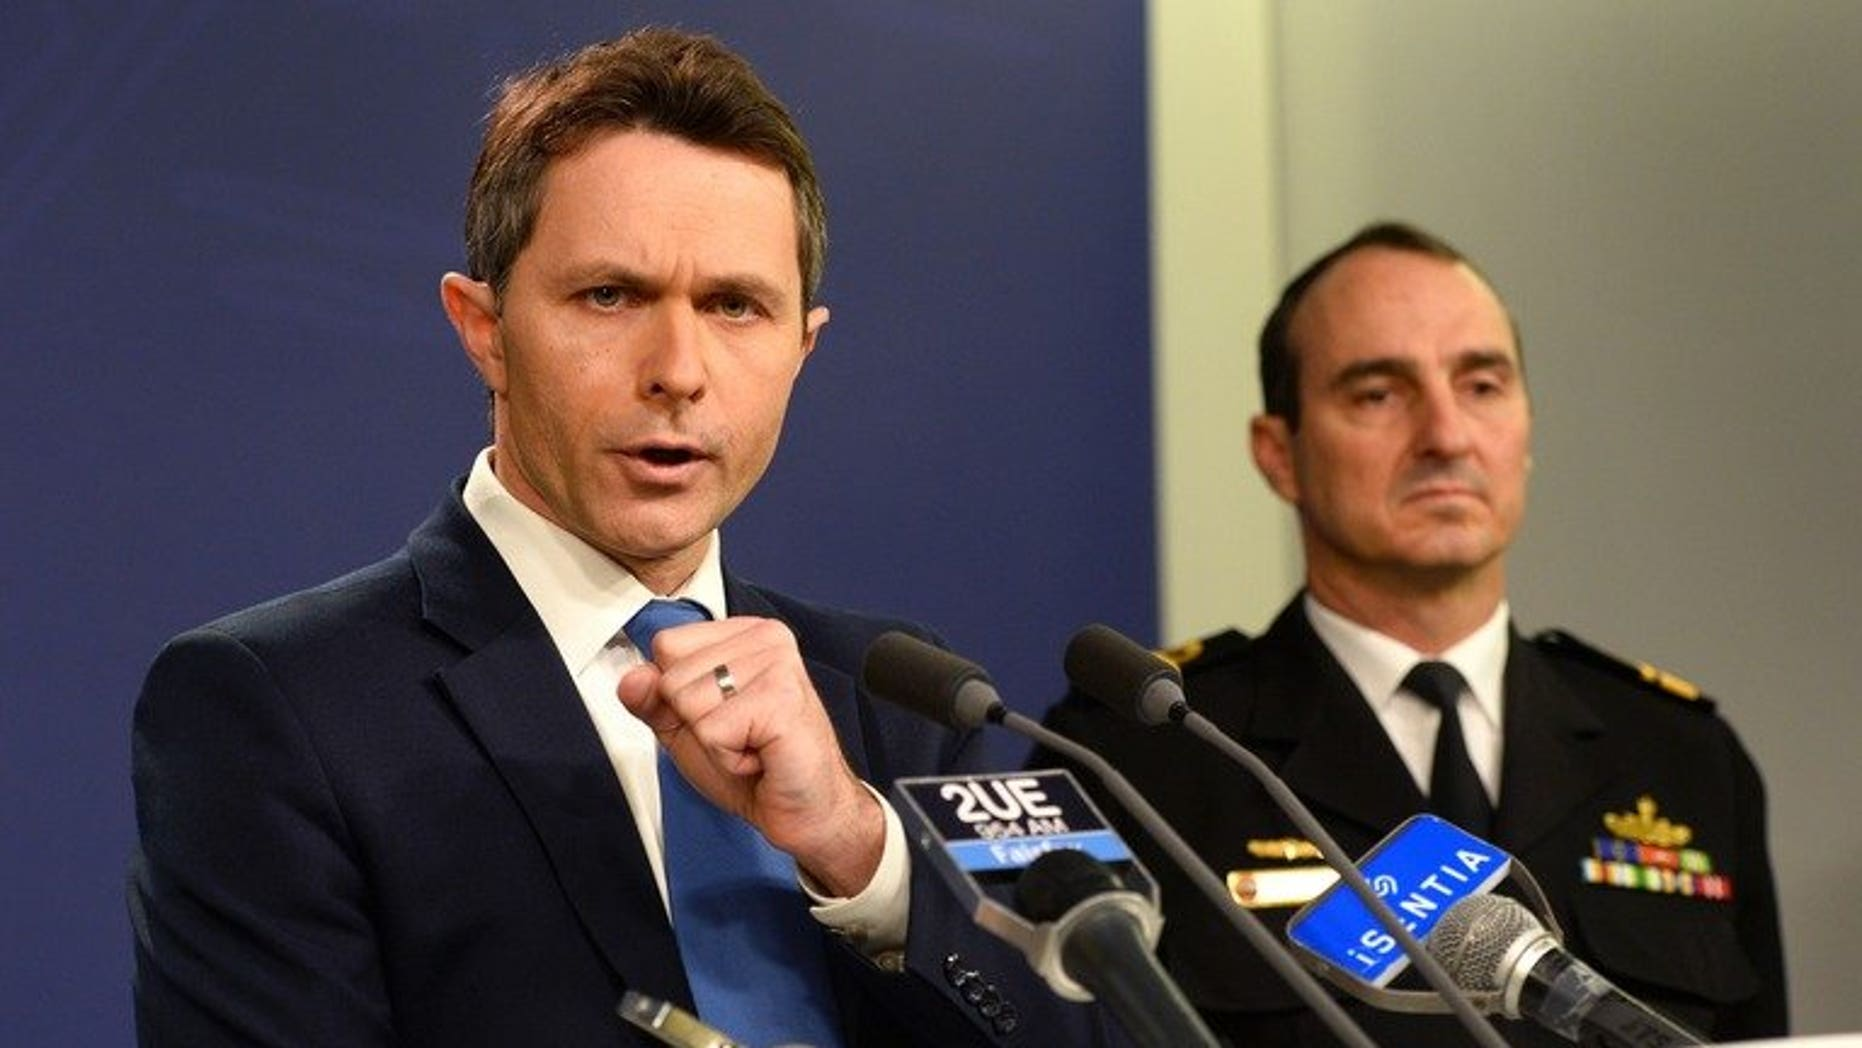 """Australian Home Affairs Minister Jason Clare (L) and Commander of Border Protection Command, Rear Admiral David Johnston, during a press conference in Sydney on July 17, 2013. Asylum-seekers drowning on the treacherous boat journey to Australia presented a """"god-awful"""" problem, Clare said."""